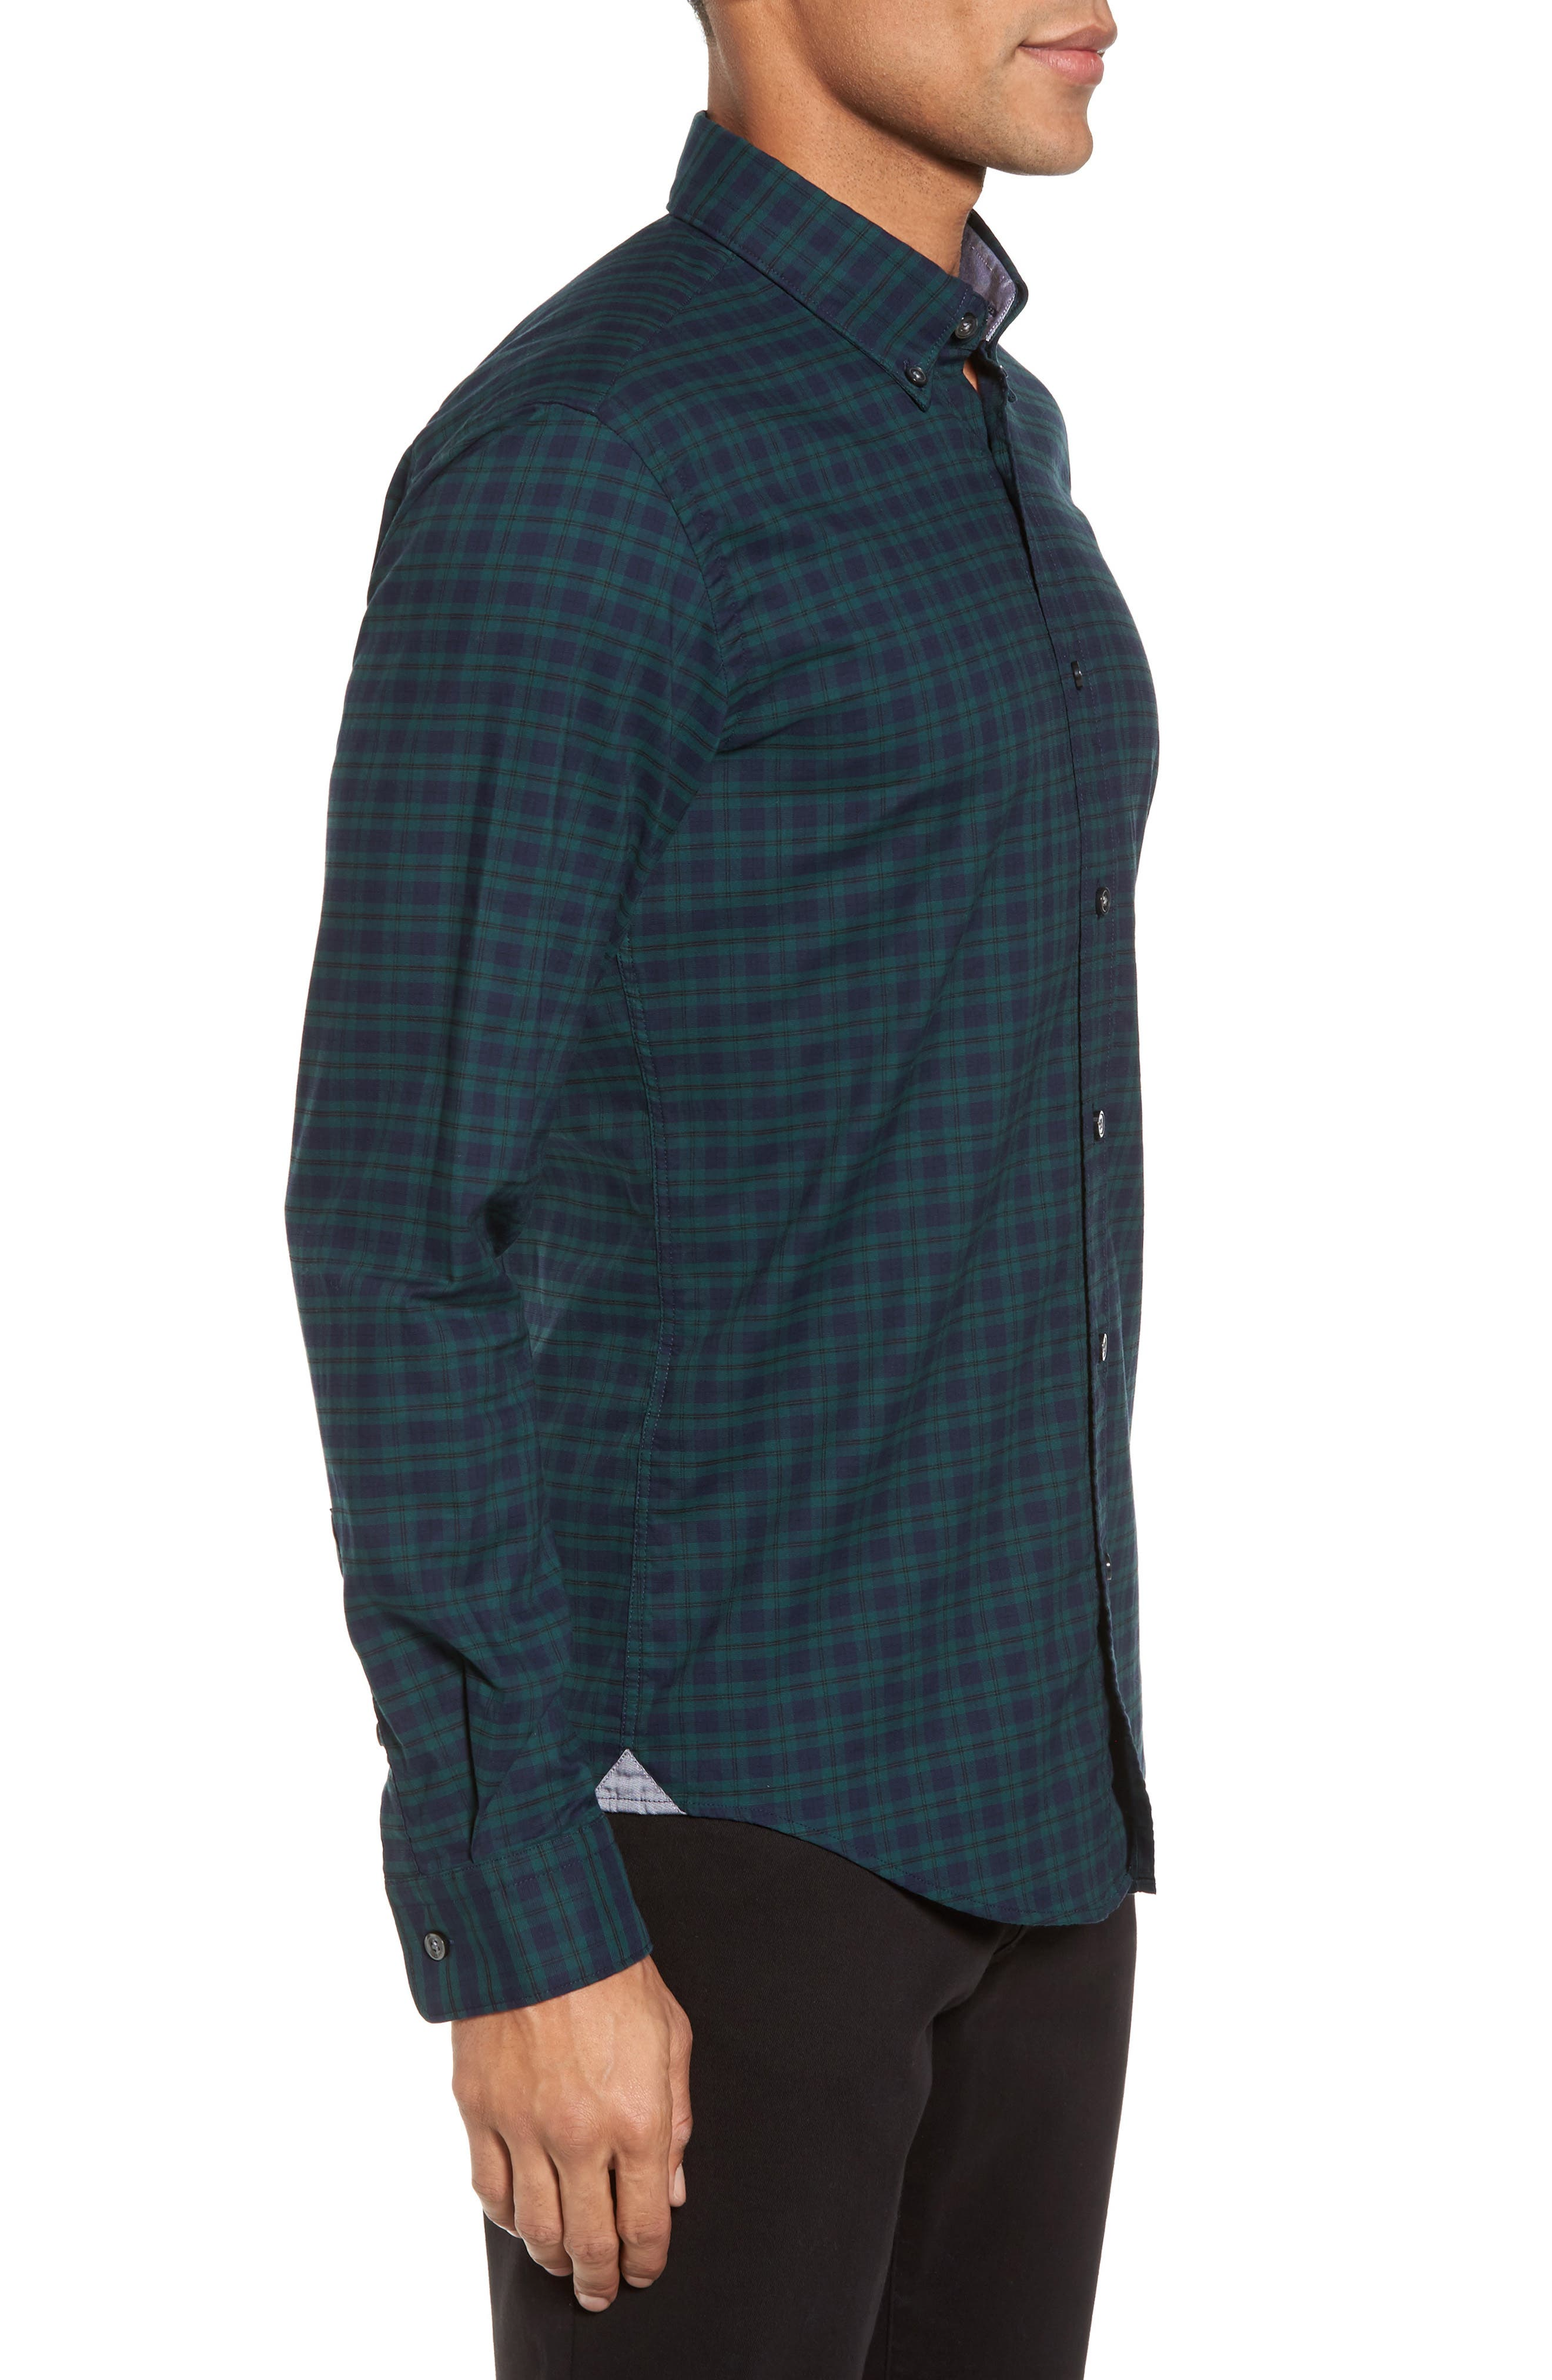 Rod Trim Fit Check Oxford Sport Shirt,                             Alternate thumbnail 3, color,                             Green